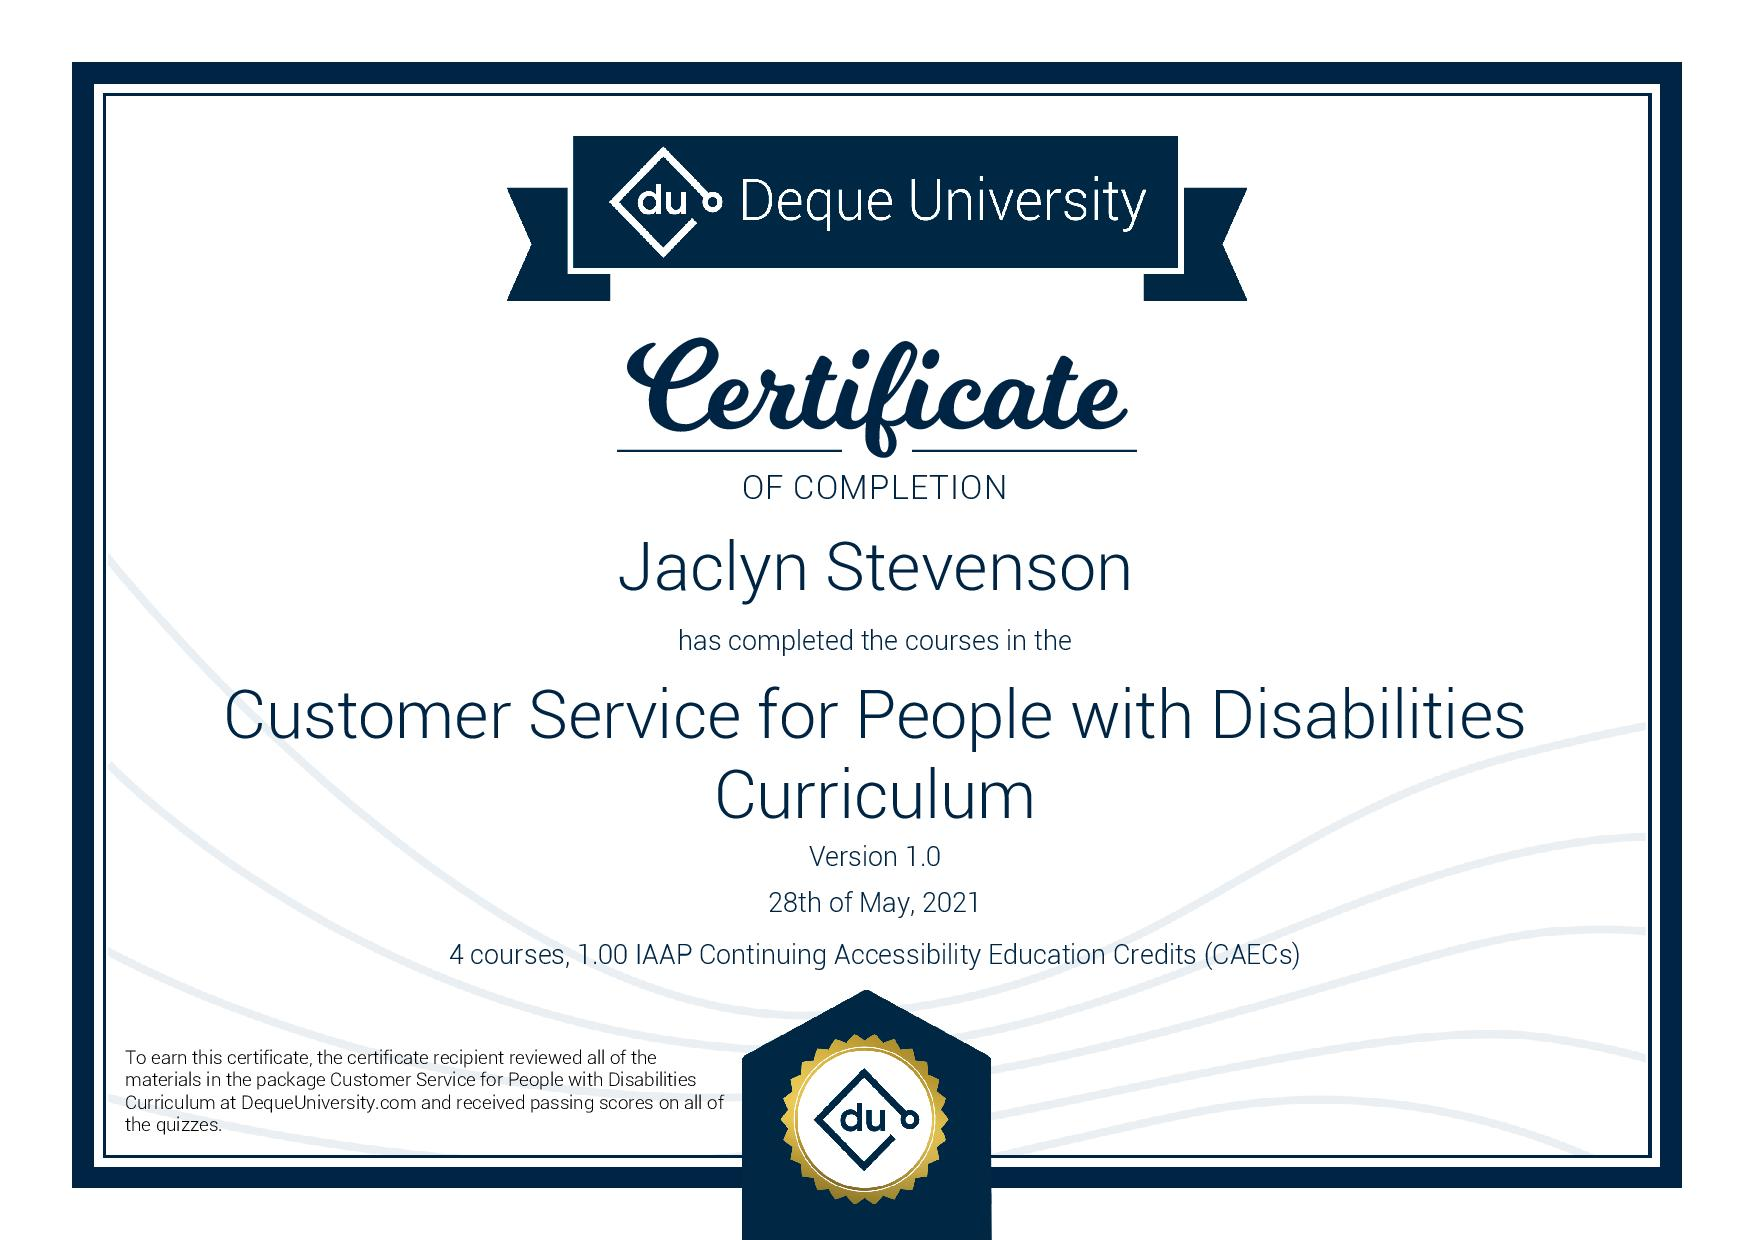 Certificate OF COMPLETION Jaclyn Stevenson has completed the courses in the Customer Service for People with Disabilities Curriculum Version 1.0 28th of May, 2021 4 courses, 1.00 IAAP Continuing Accessibility Education Credits (CAECs)